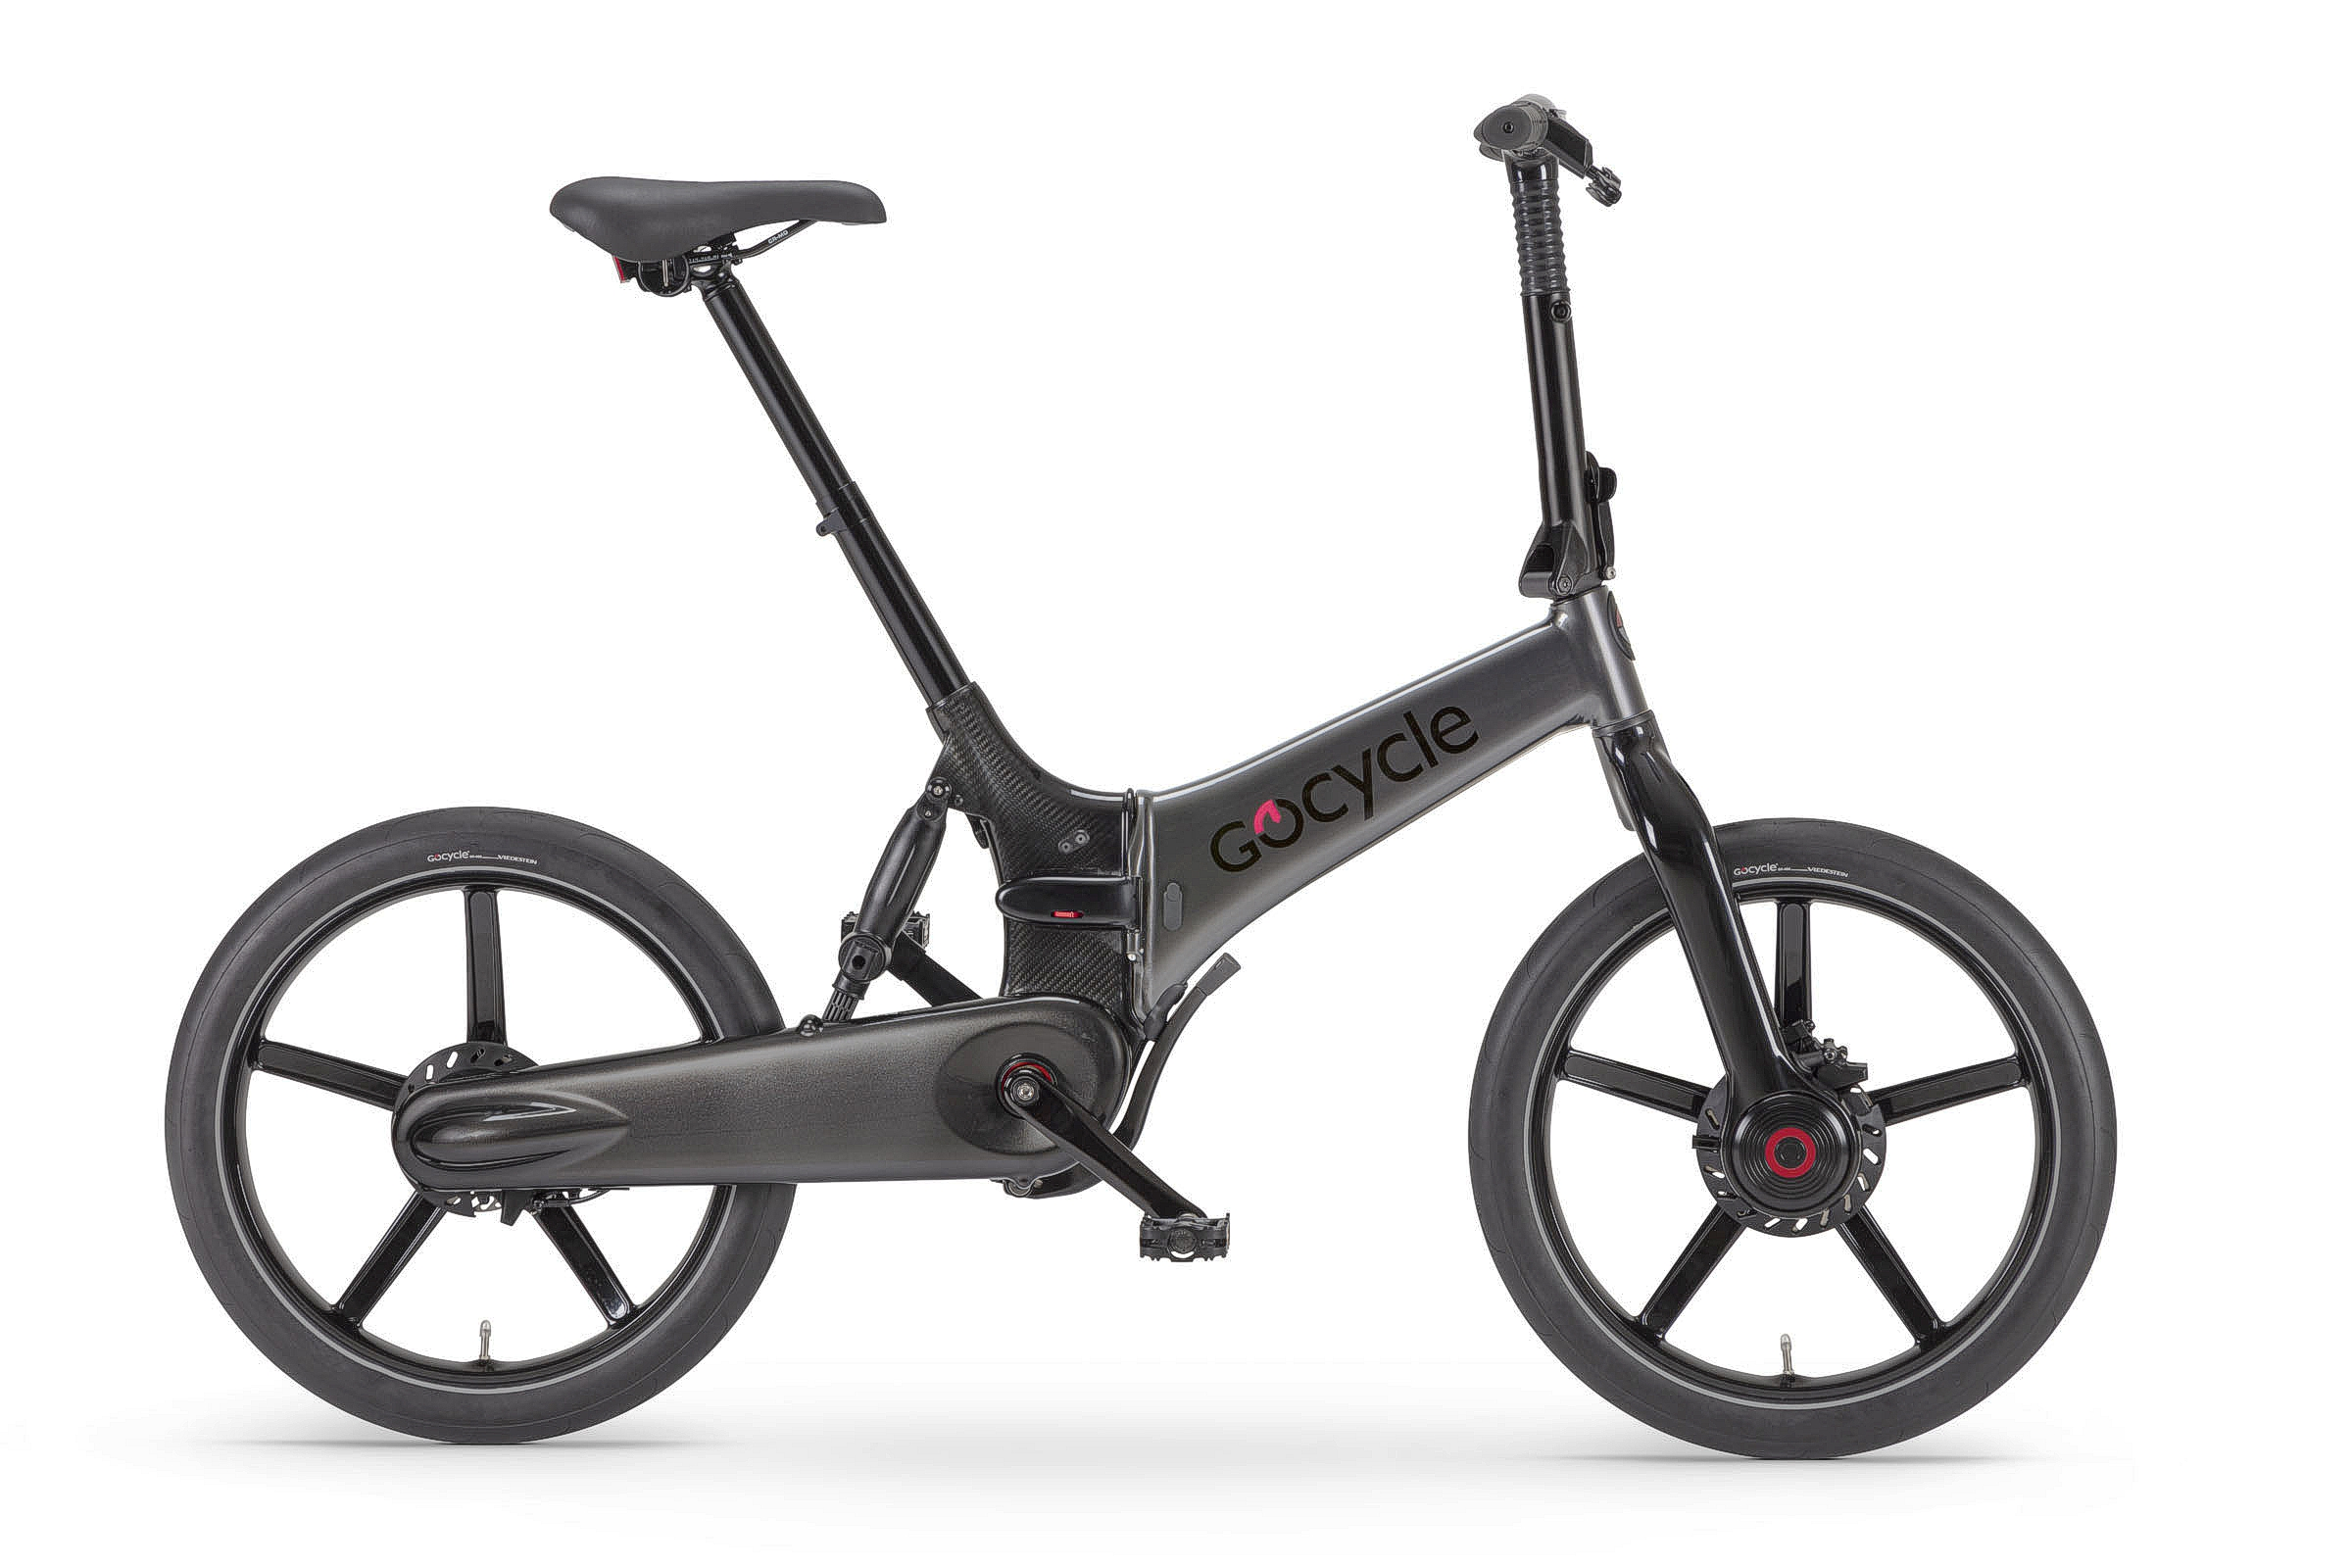 Gocycle G4i metalno siva